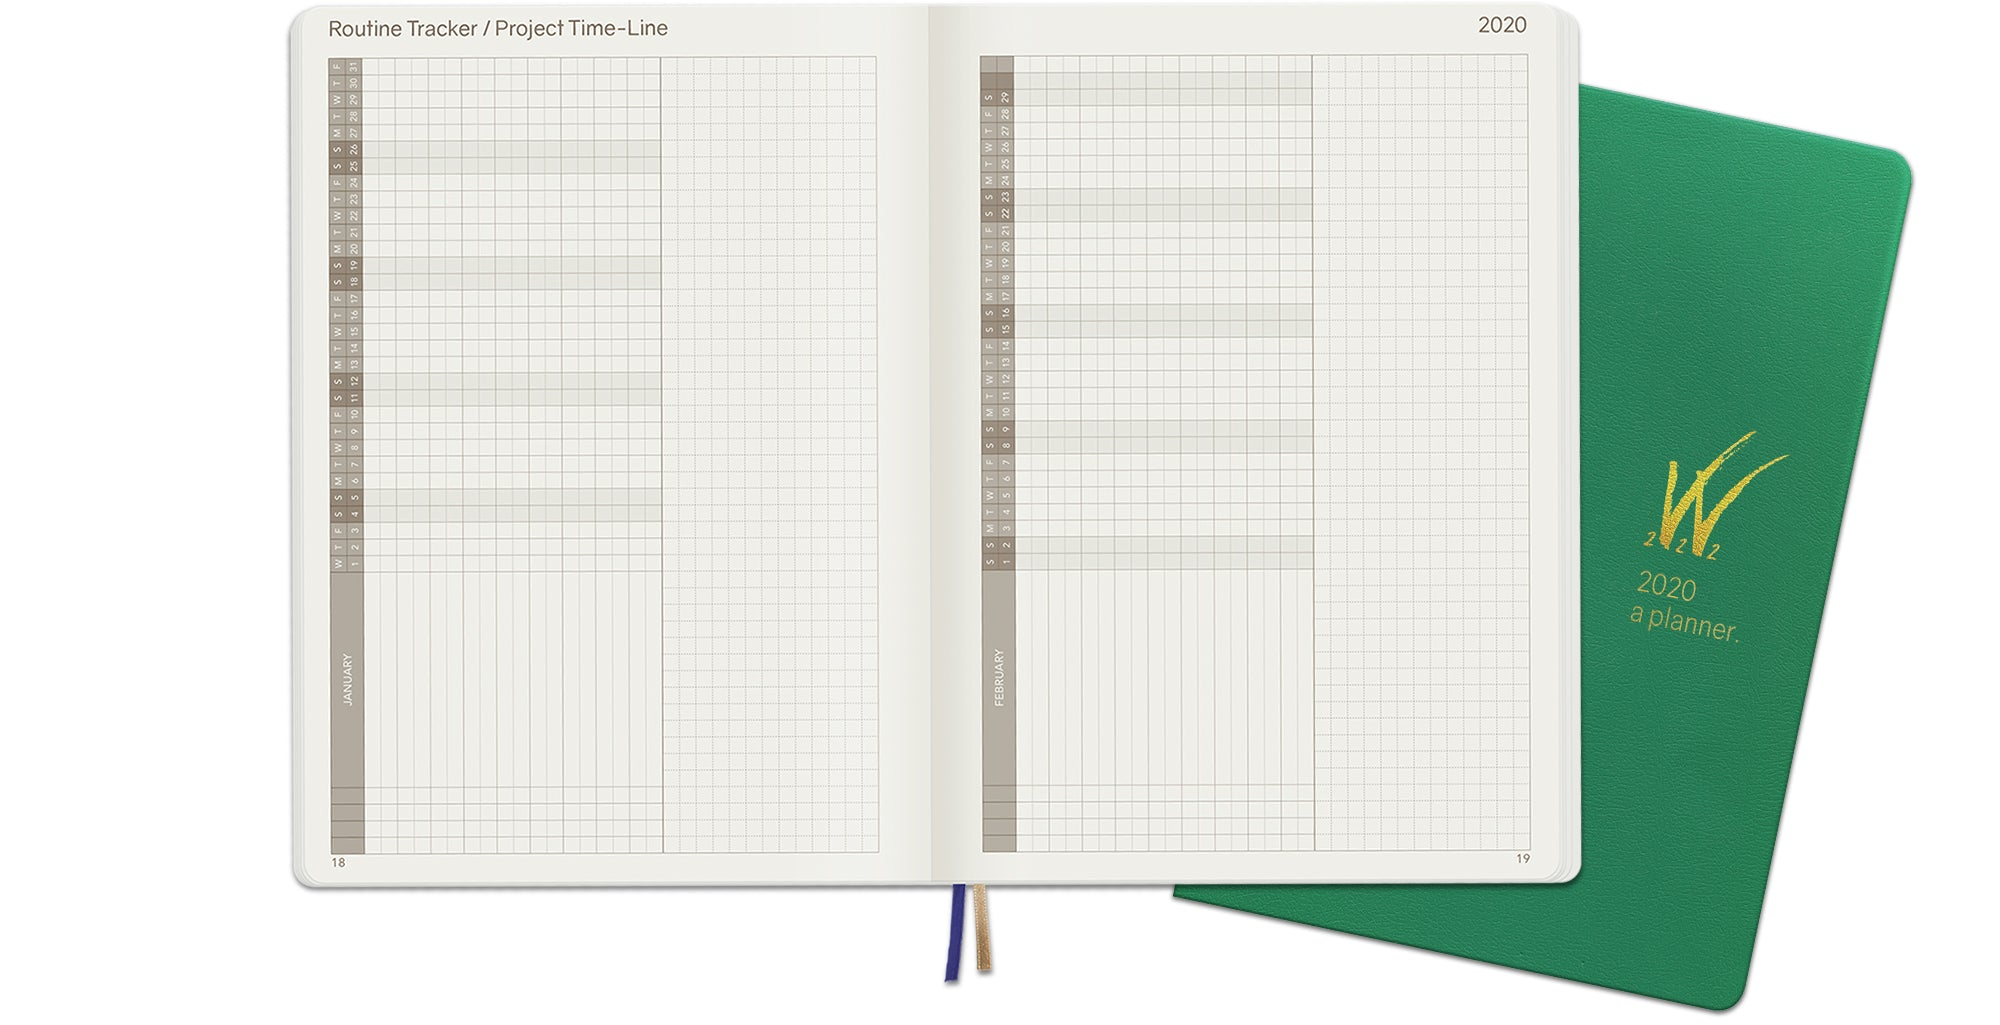 2020 A5 Tomoe River Paper Weekly Planner Routine Project Tracker Matrix Layout